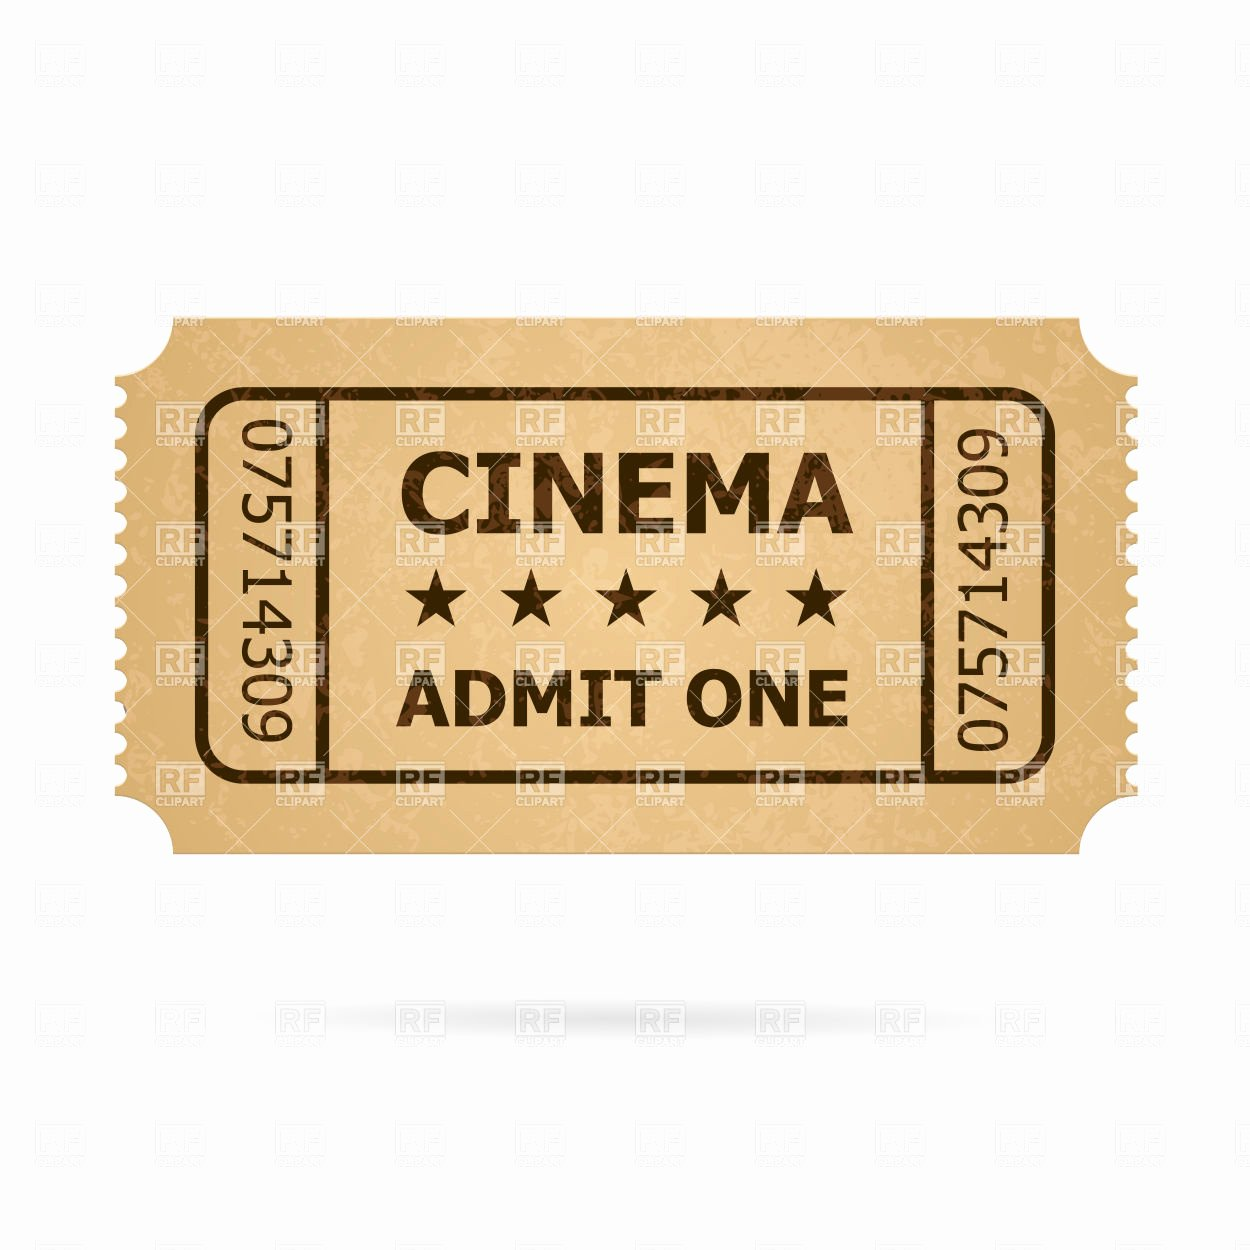 Old Fashioned Movie Ticket Inspirational Retro Cinema Cardboard Ticket Vector Image 6453 – Rfclipart